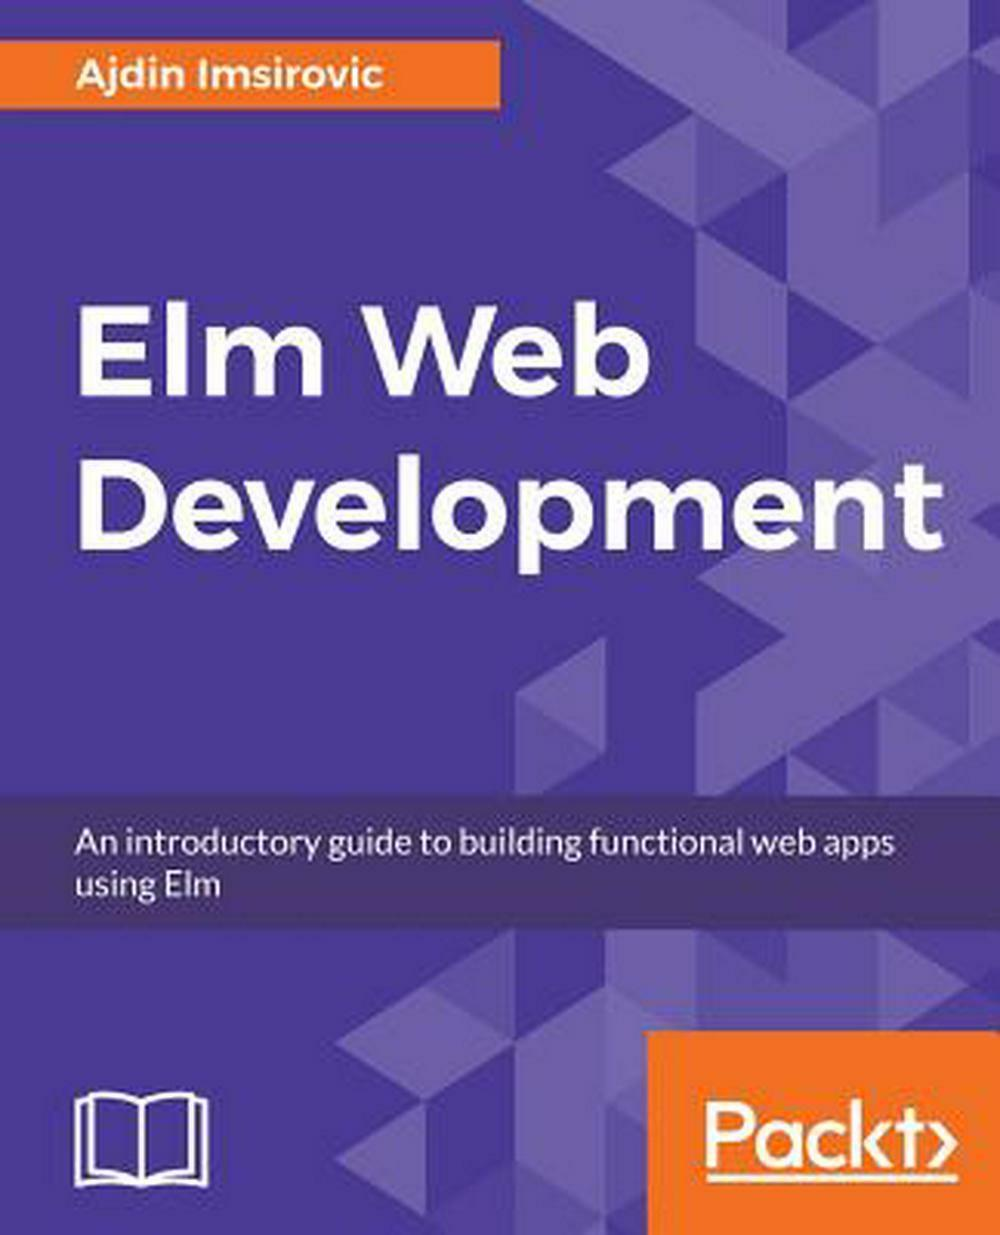 Elm Web Development by Ajdin Imsirovic Paperback Book Free Shipping! |